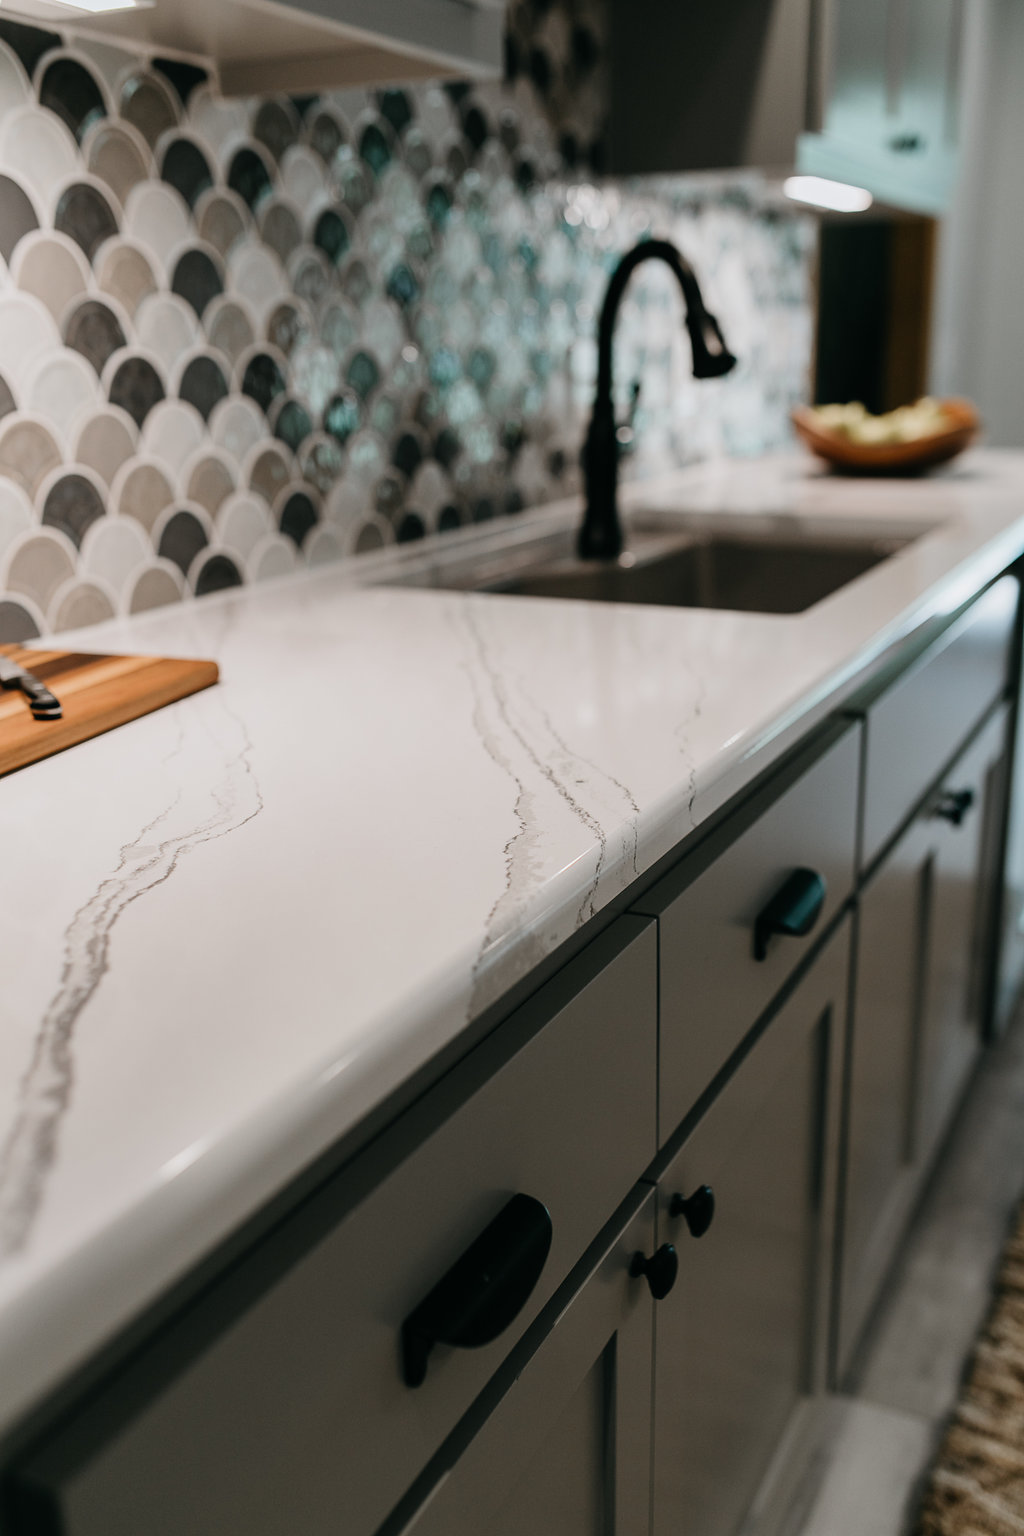 White and grey marbled kitchen countertop